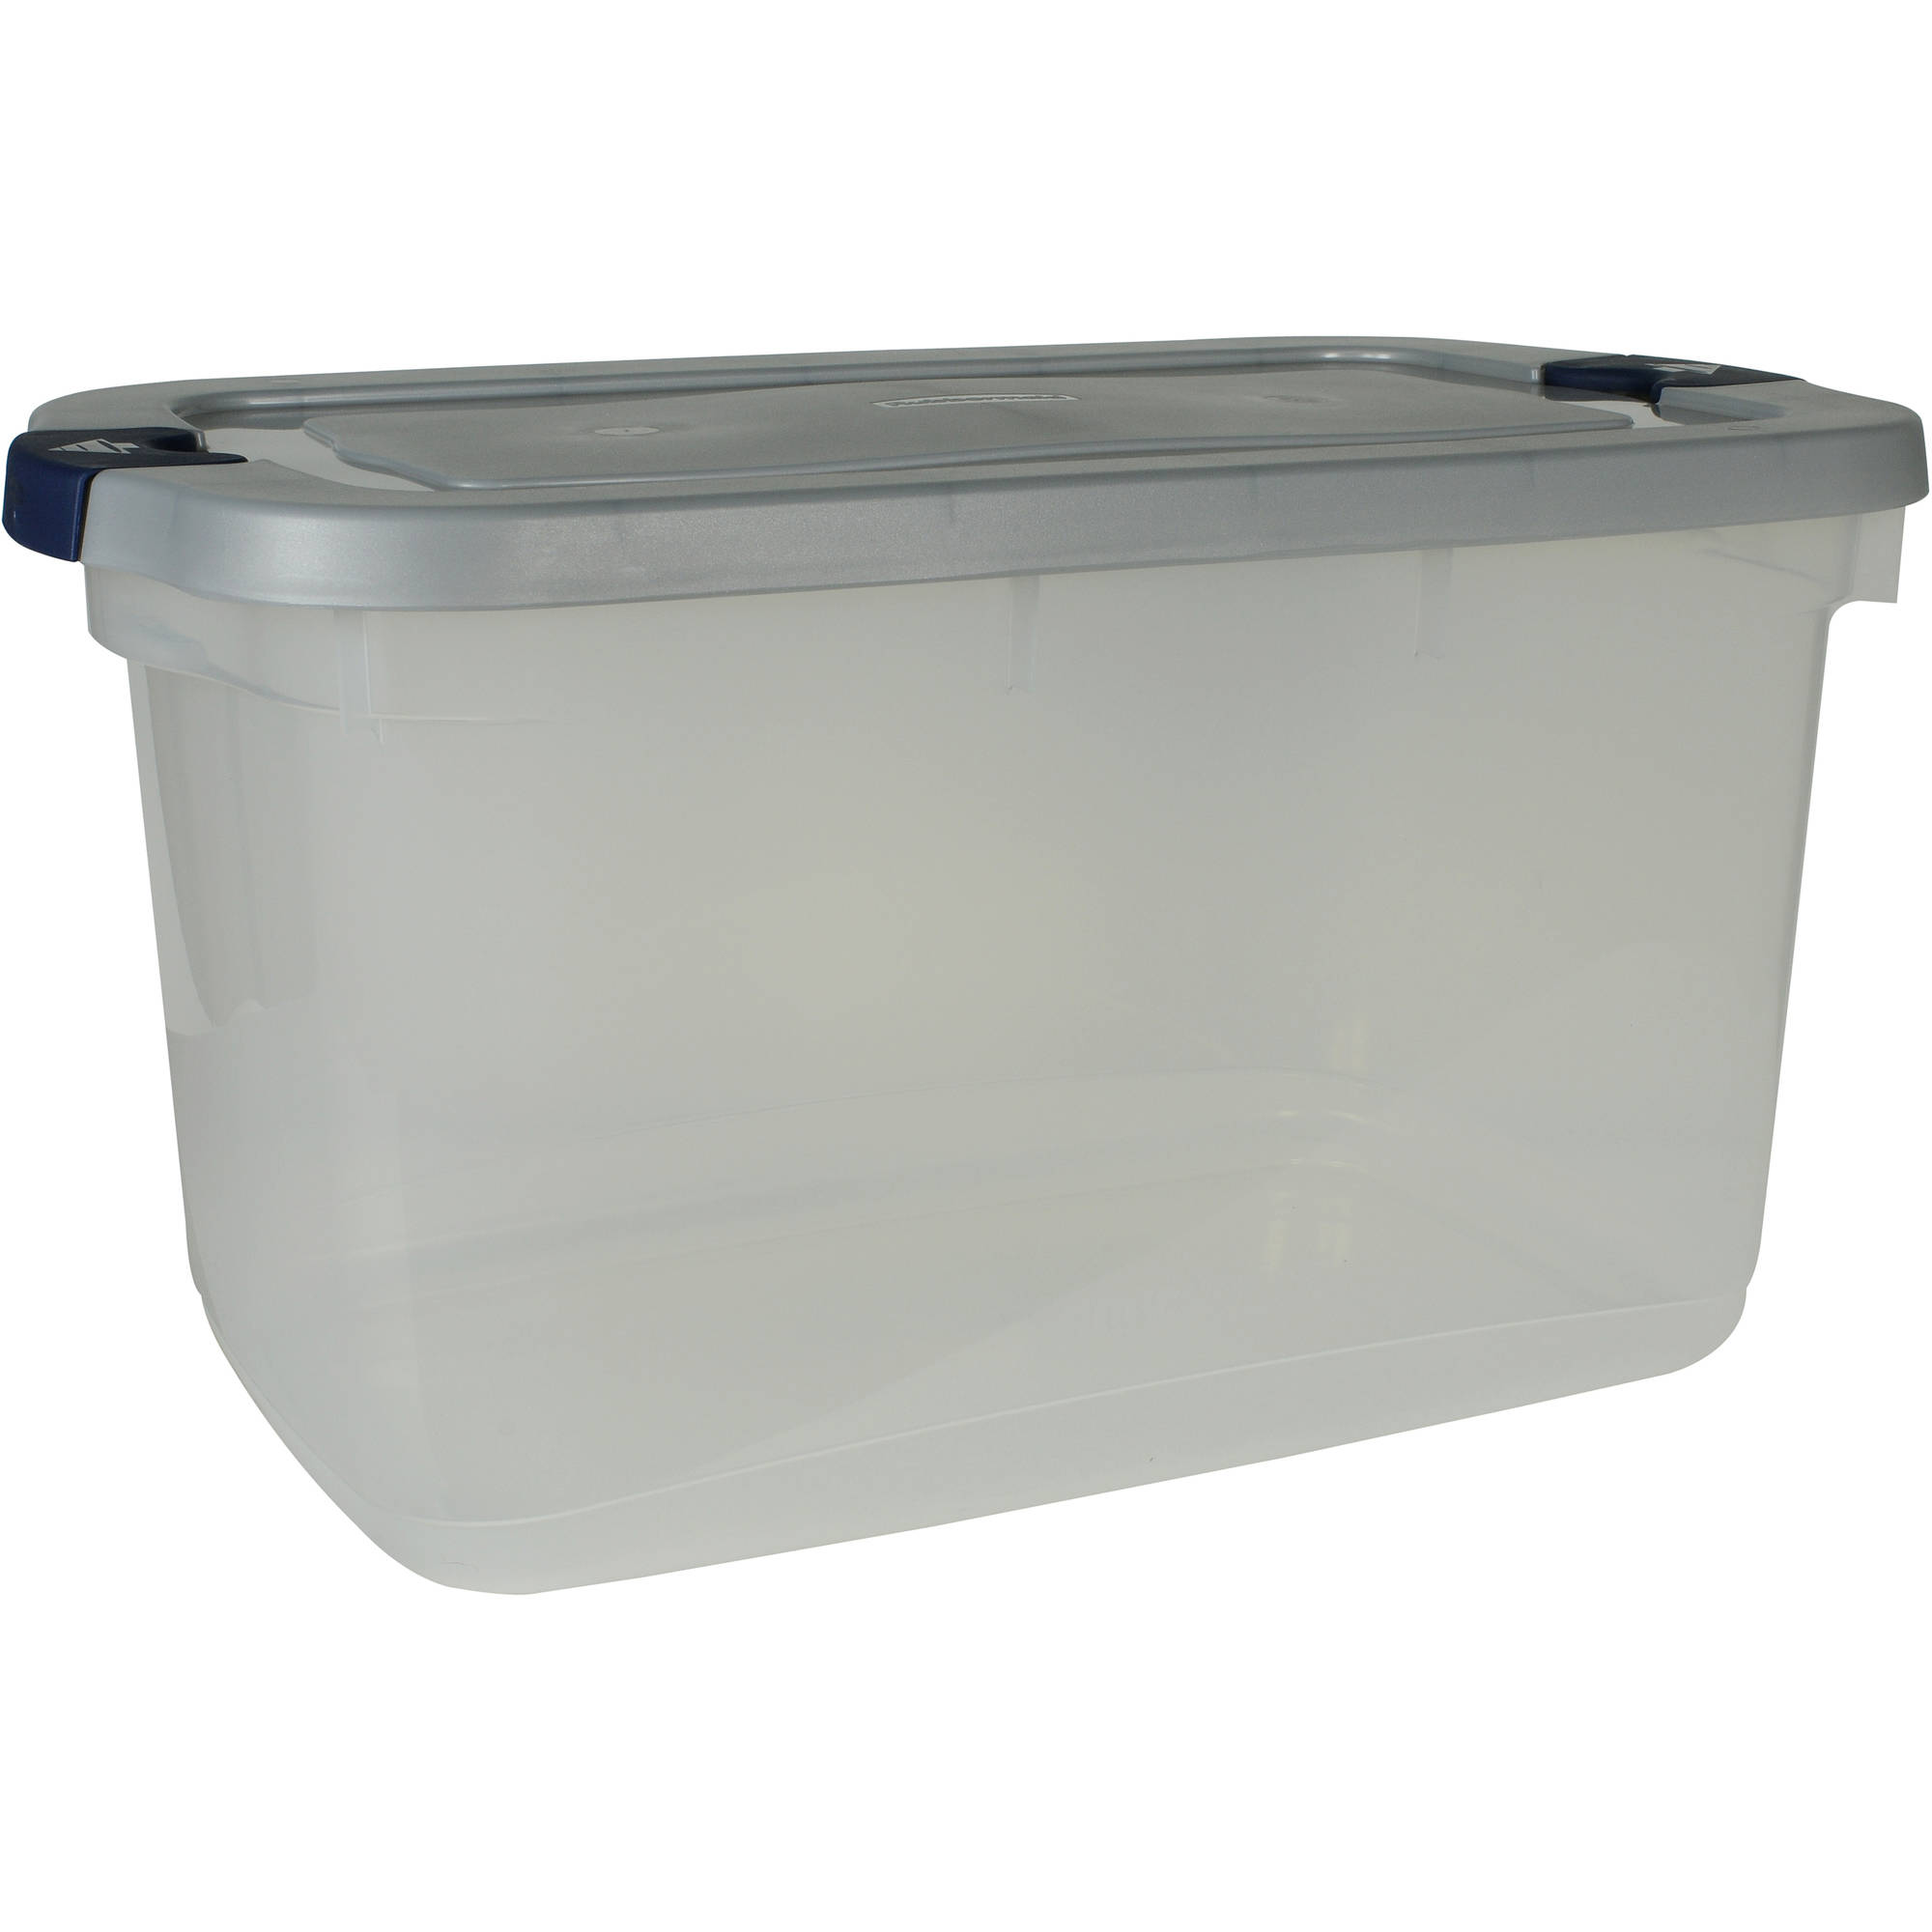 rubbermaid roughneck clear storage tote bins 66 qt 16 5 gal